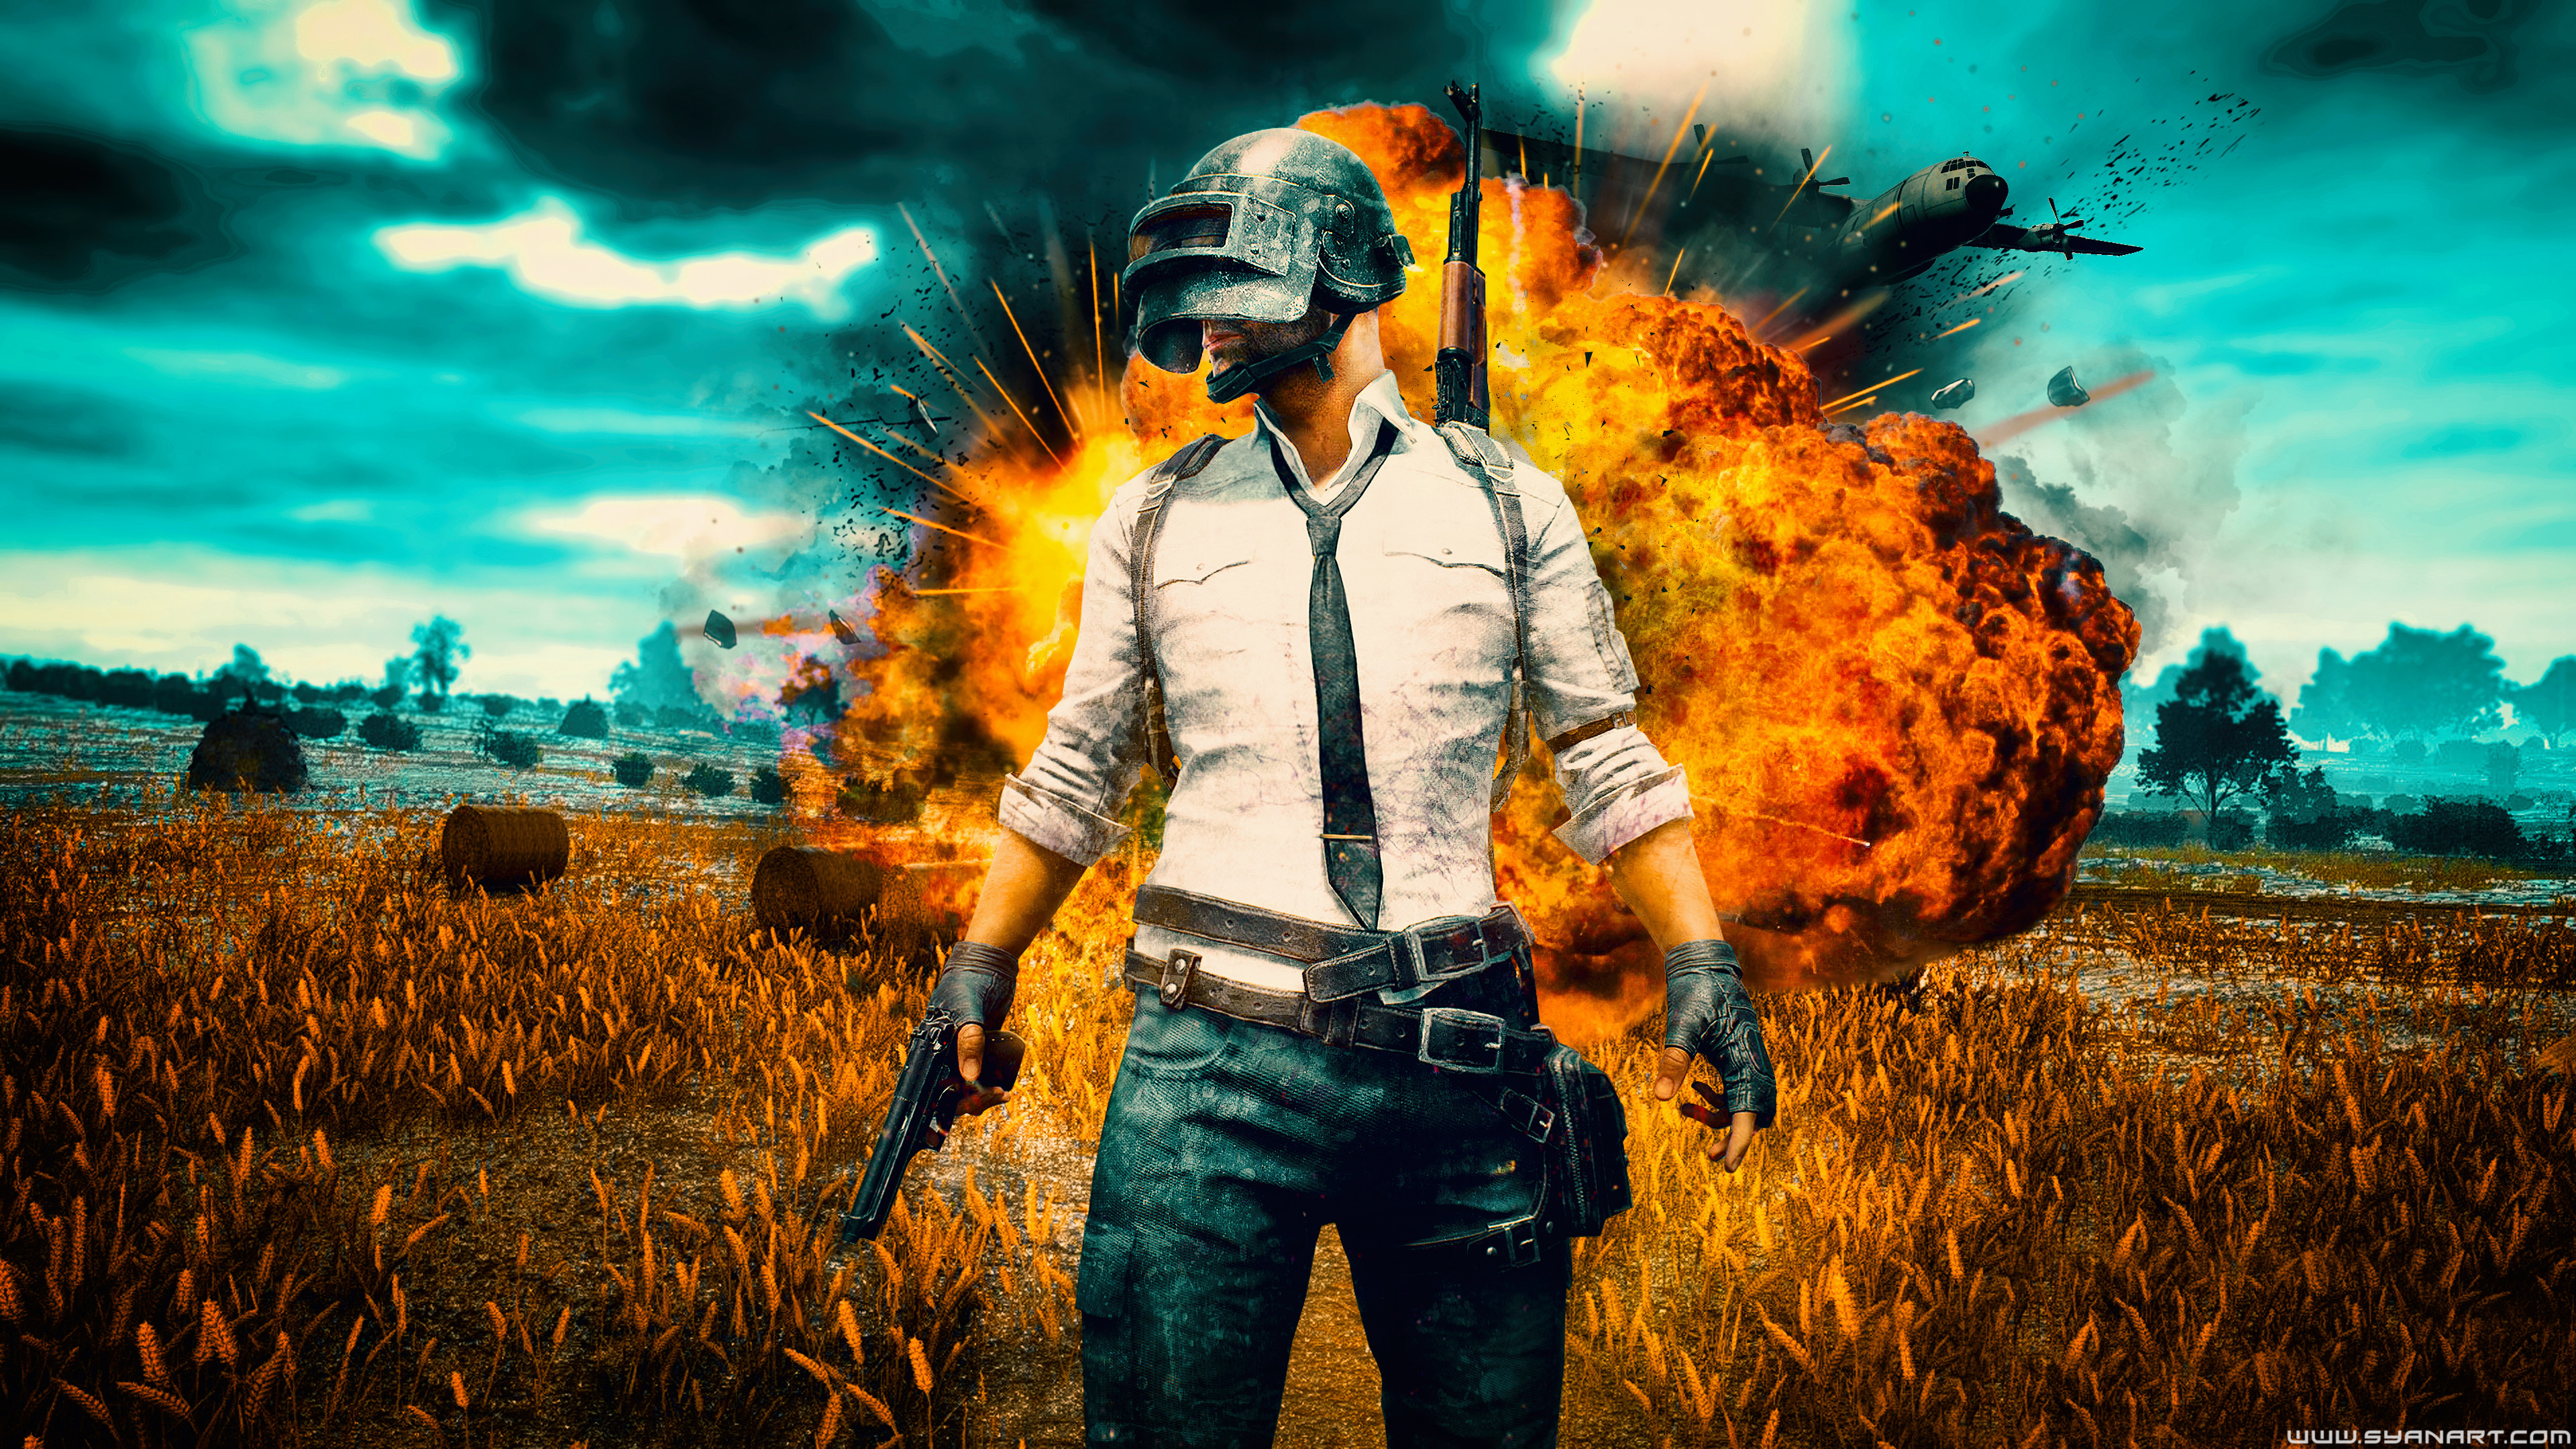 Wallpaper Of Pubg Mobile: Pub Wallpaper (57+ Images